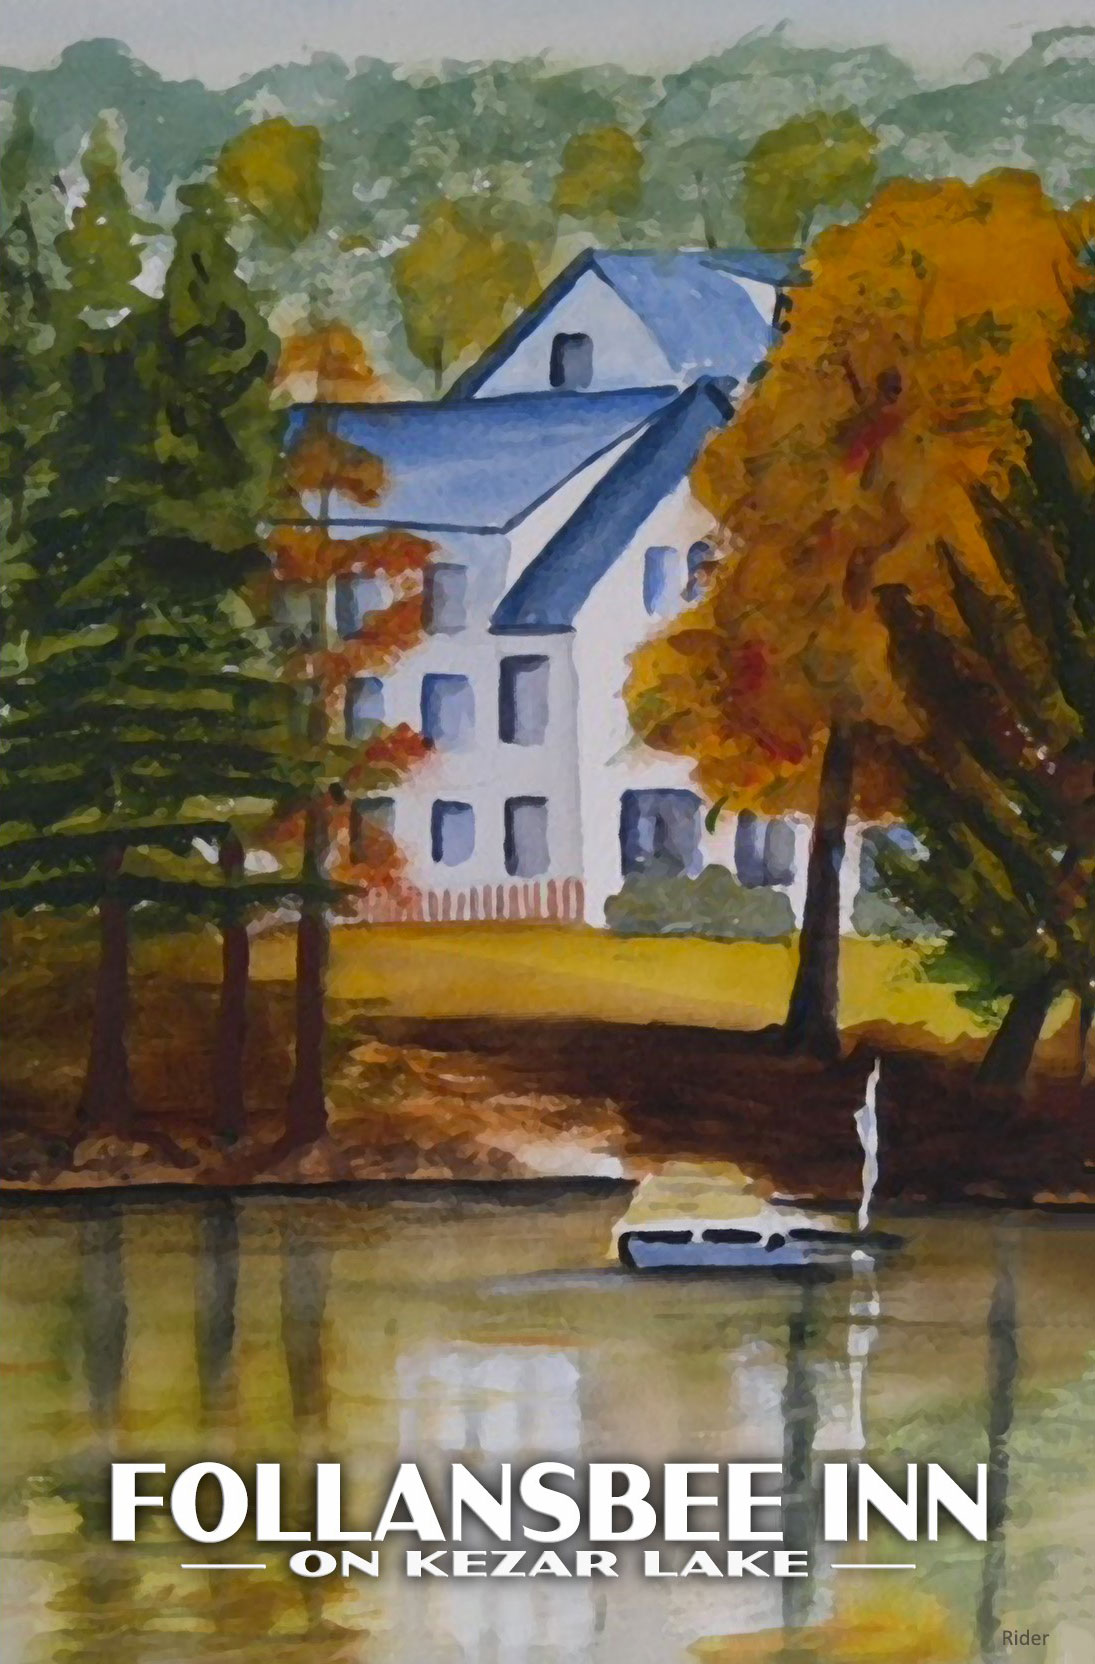 The Follansbee Inn Art | Follansbee Inn, Kazer Lake, NH